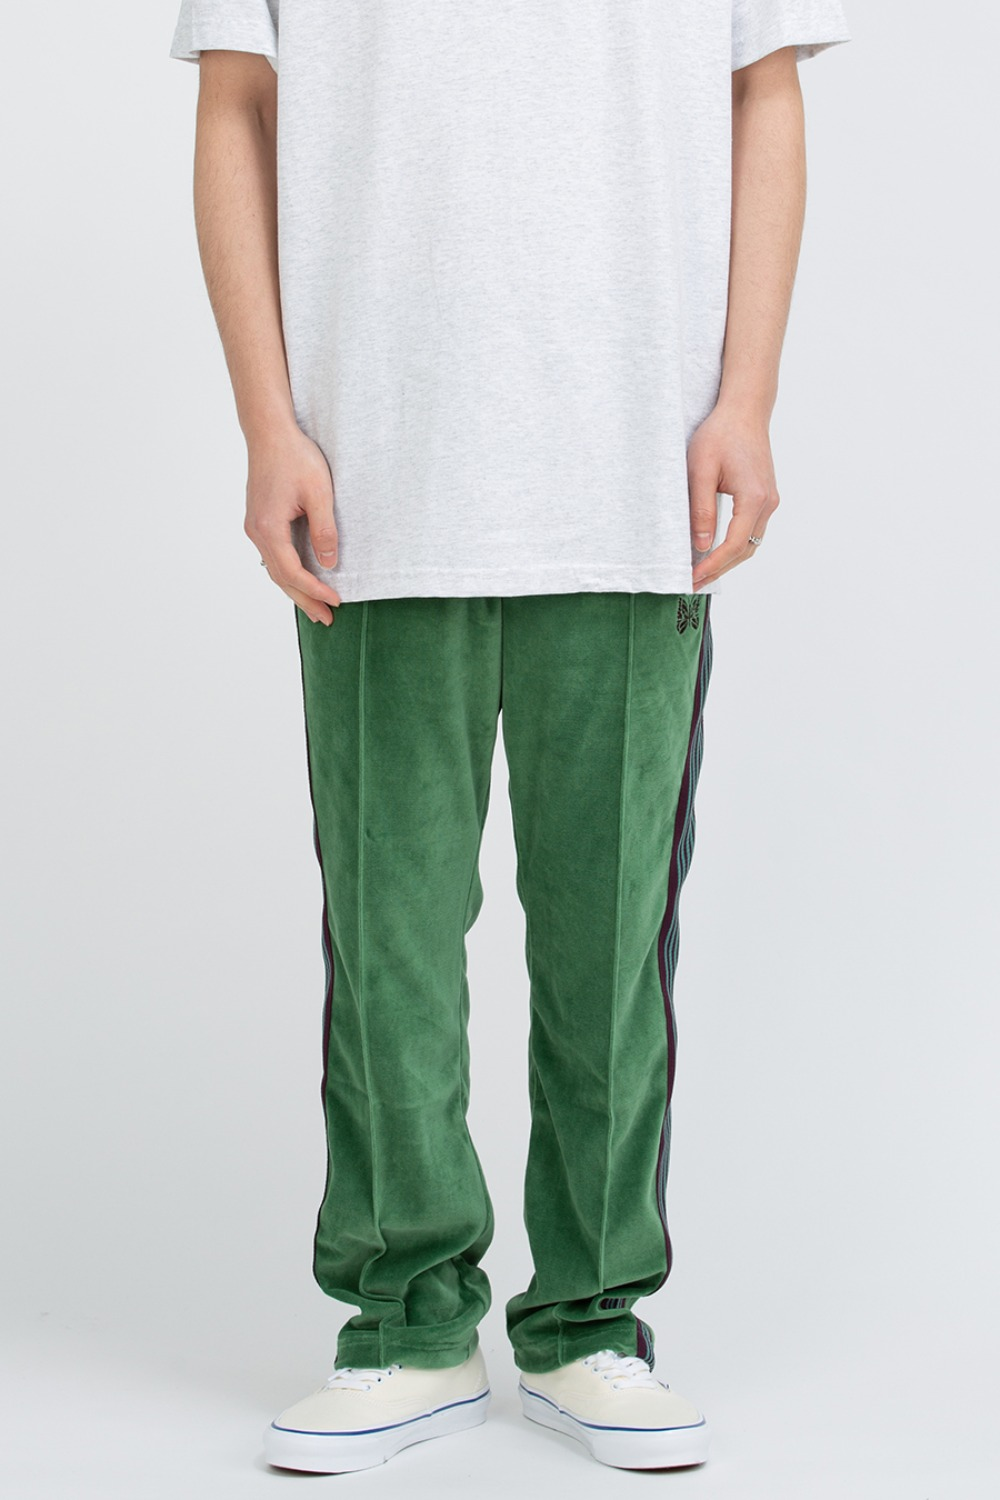 NARROW TRACK PANT - C/PE VELOUR GREEN